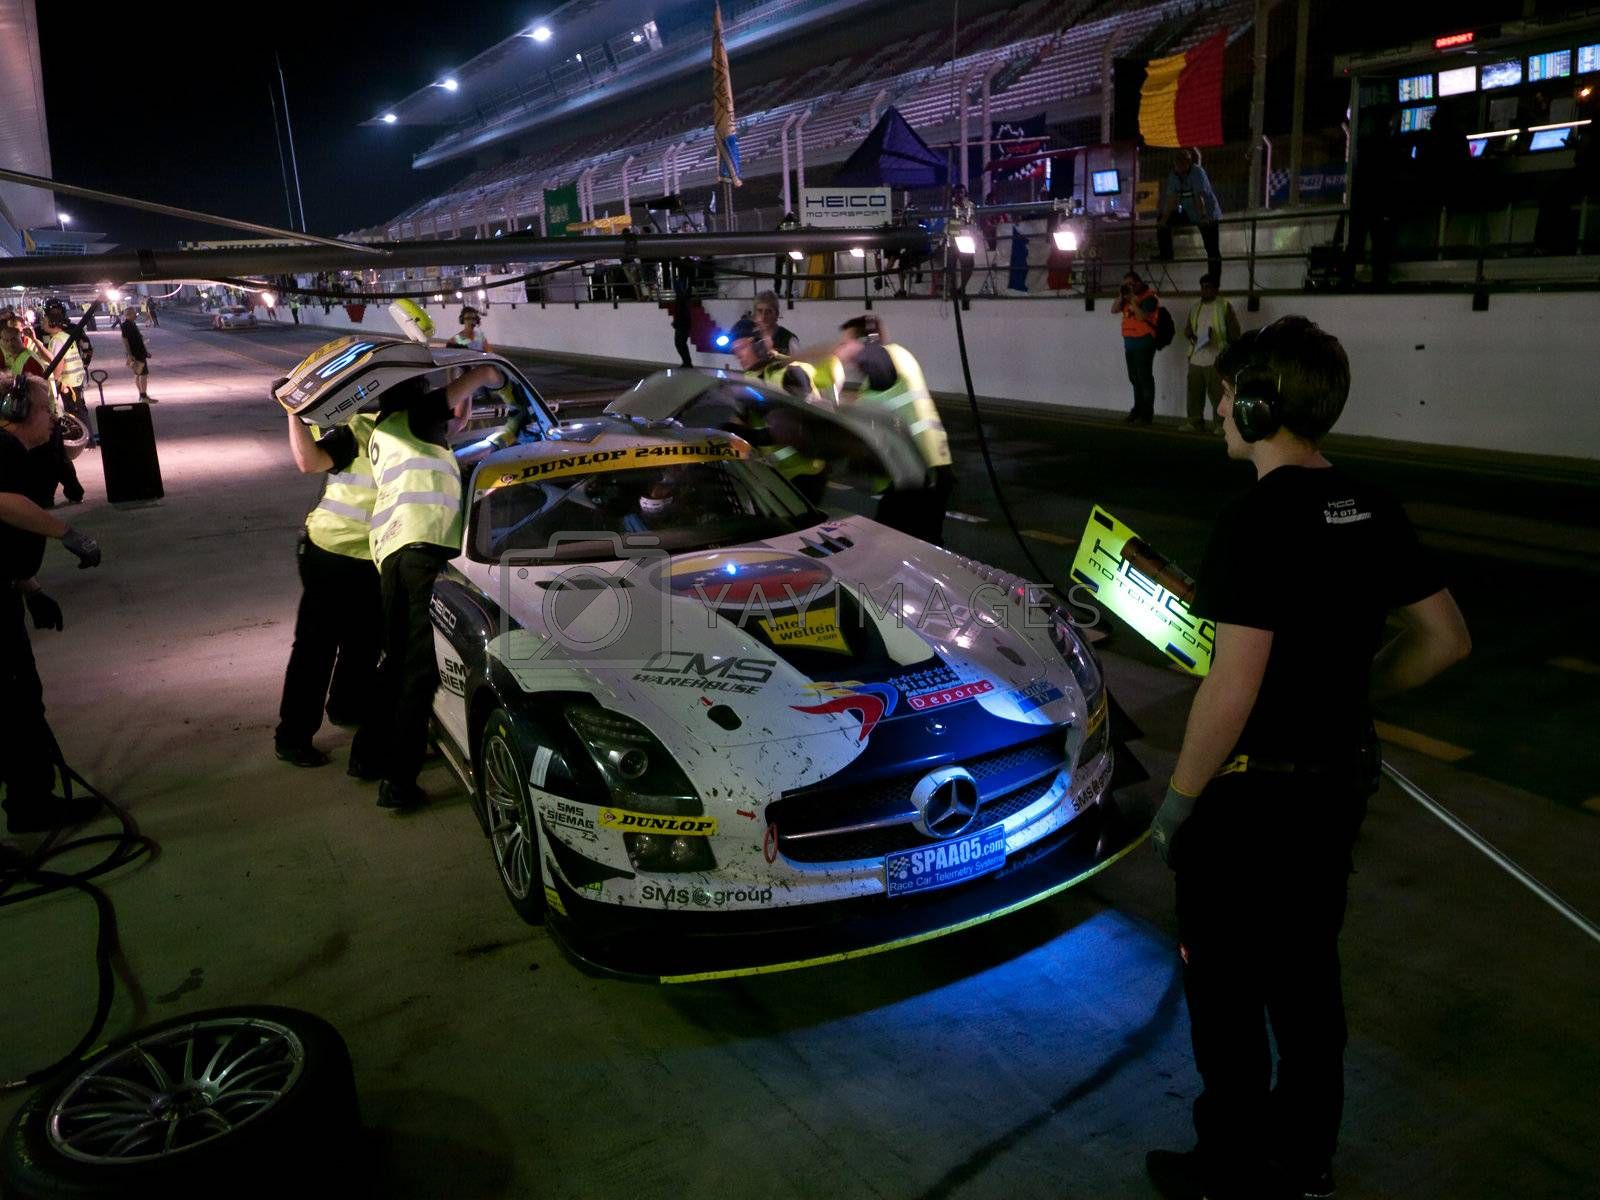 DUBAI - JANUARY 13: Car 16, a Mercedes SLS AMG GT3 during pit stop at night at the 2012 Dunlop 24 Hour Race at Dubai Autodrome on January 13, 2012.